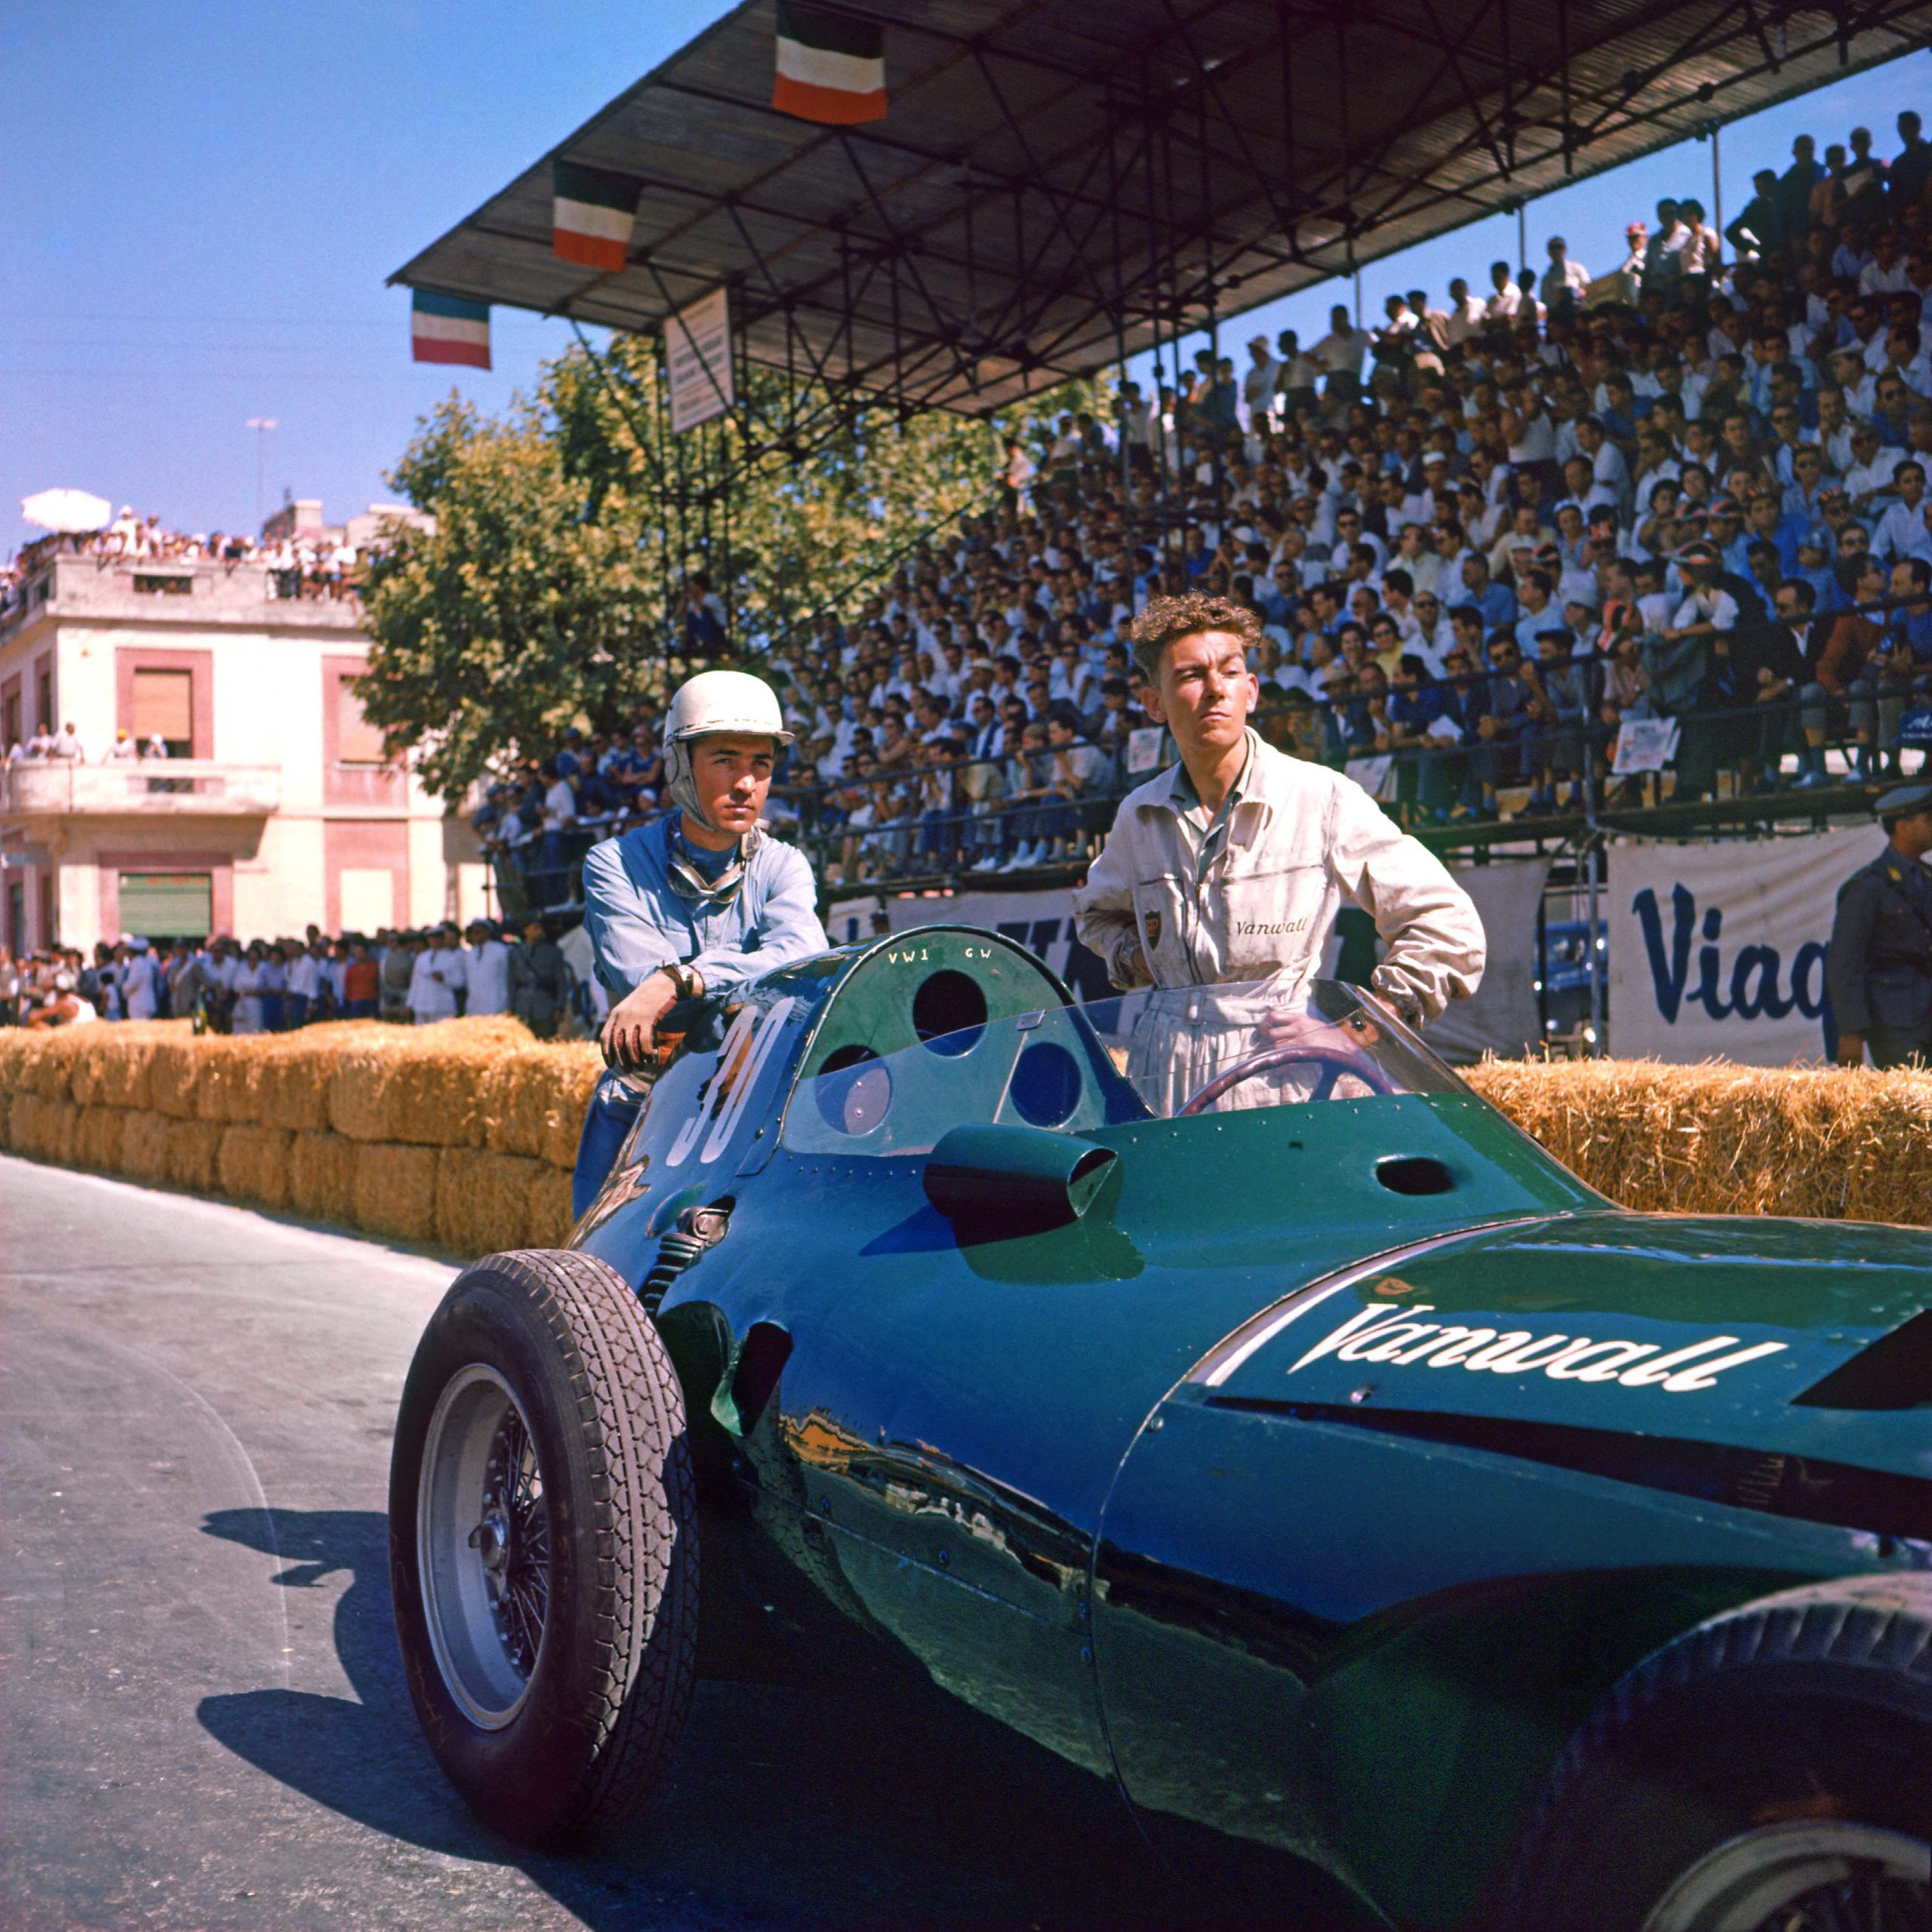 Stuart Lewis-Evans and a Vanwall mechanic on the grid before the 1957 Pescara Grand Prix. Photo: Grand Prix Photo